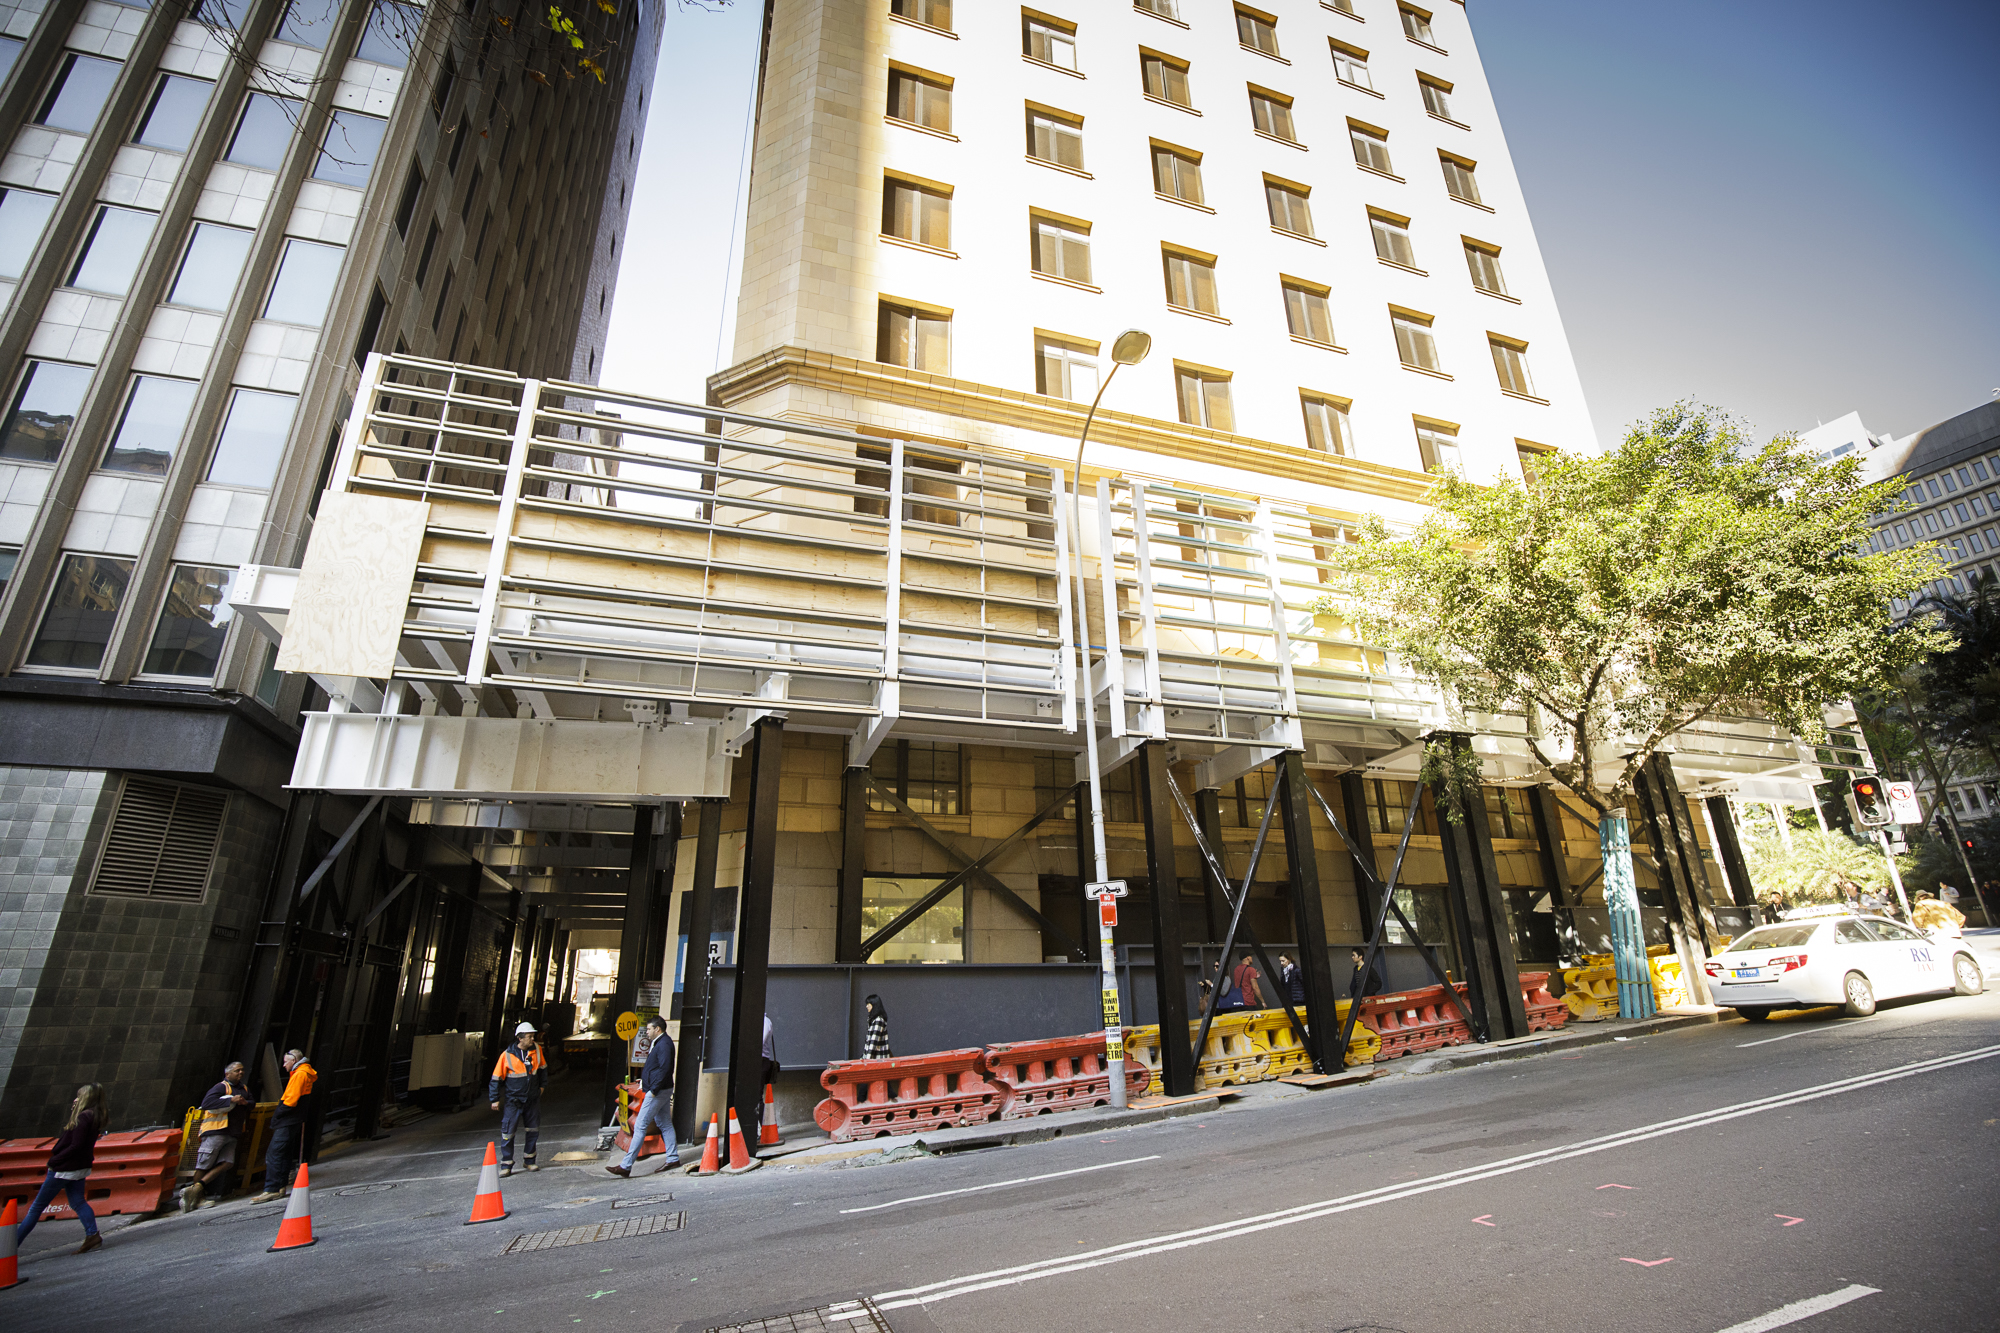 Tower - Wynyard land and marg street facade rention system base installed